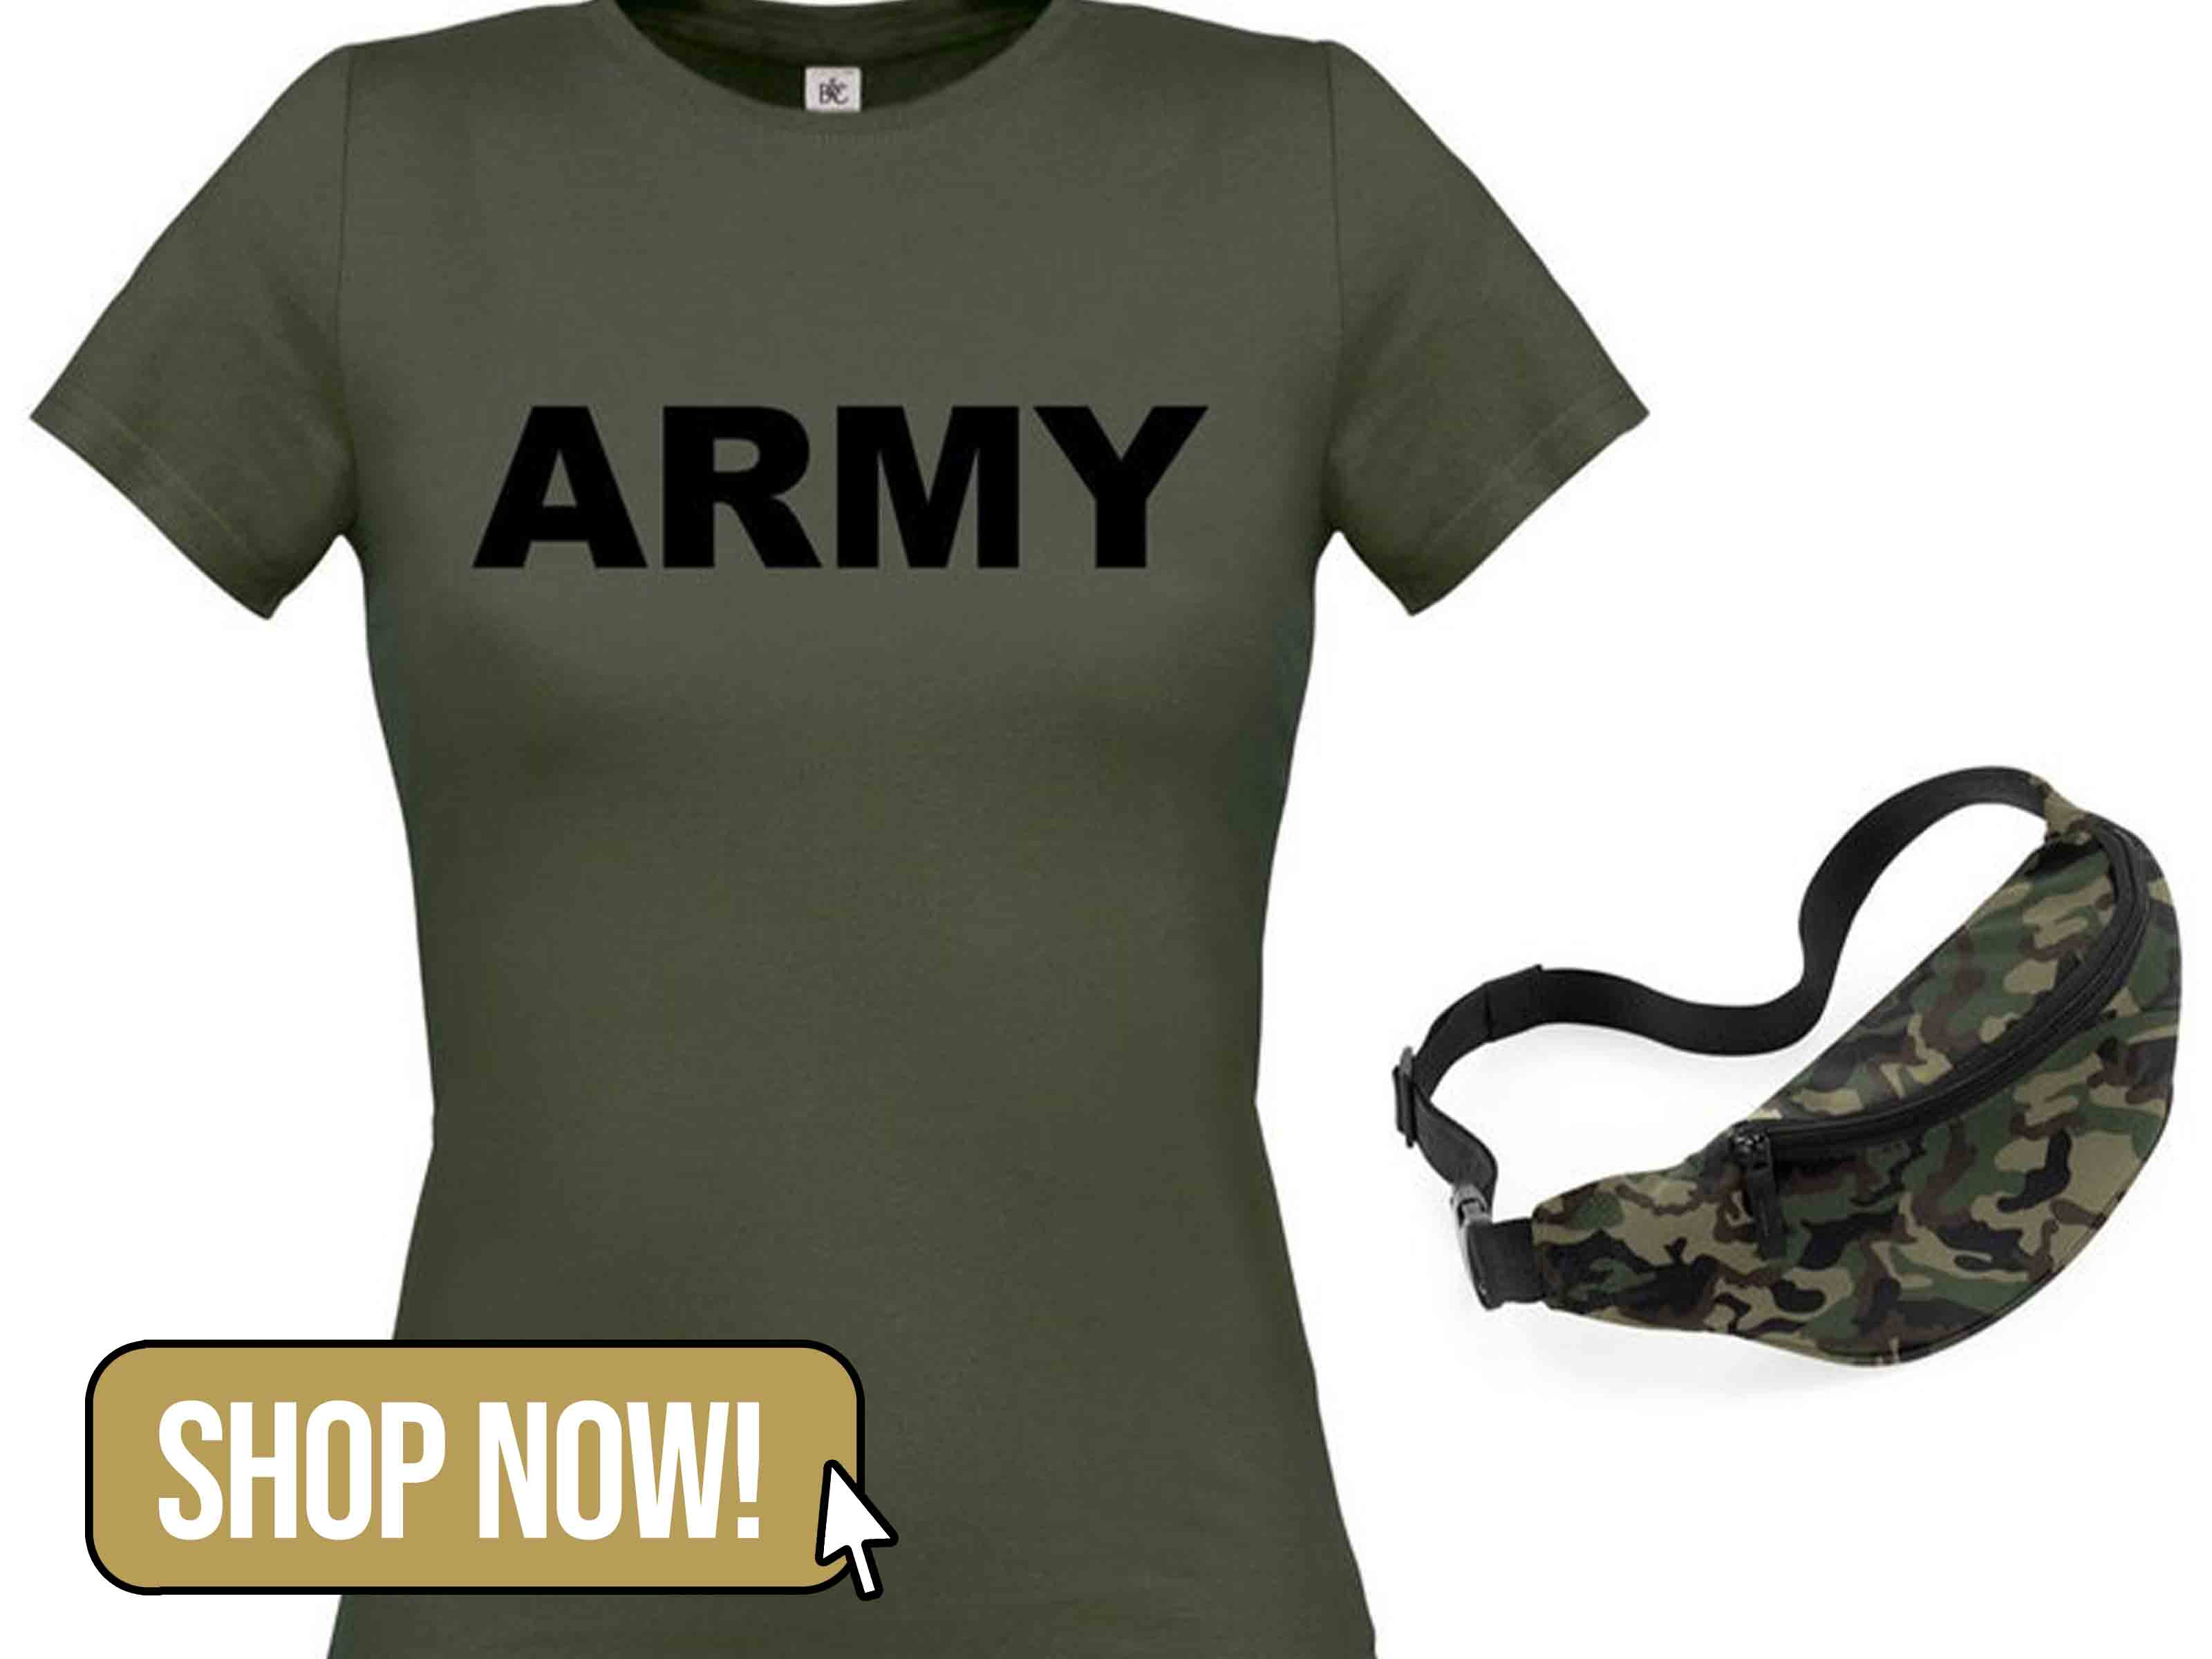 Army T-Shirt & Bag